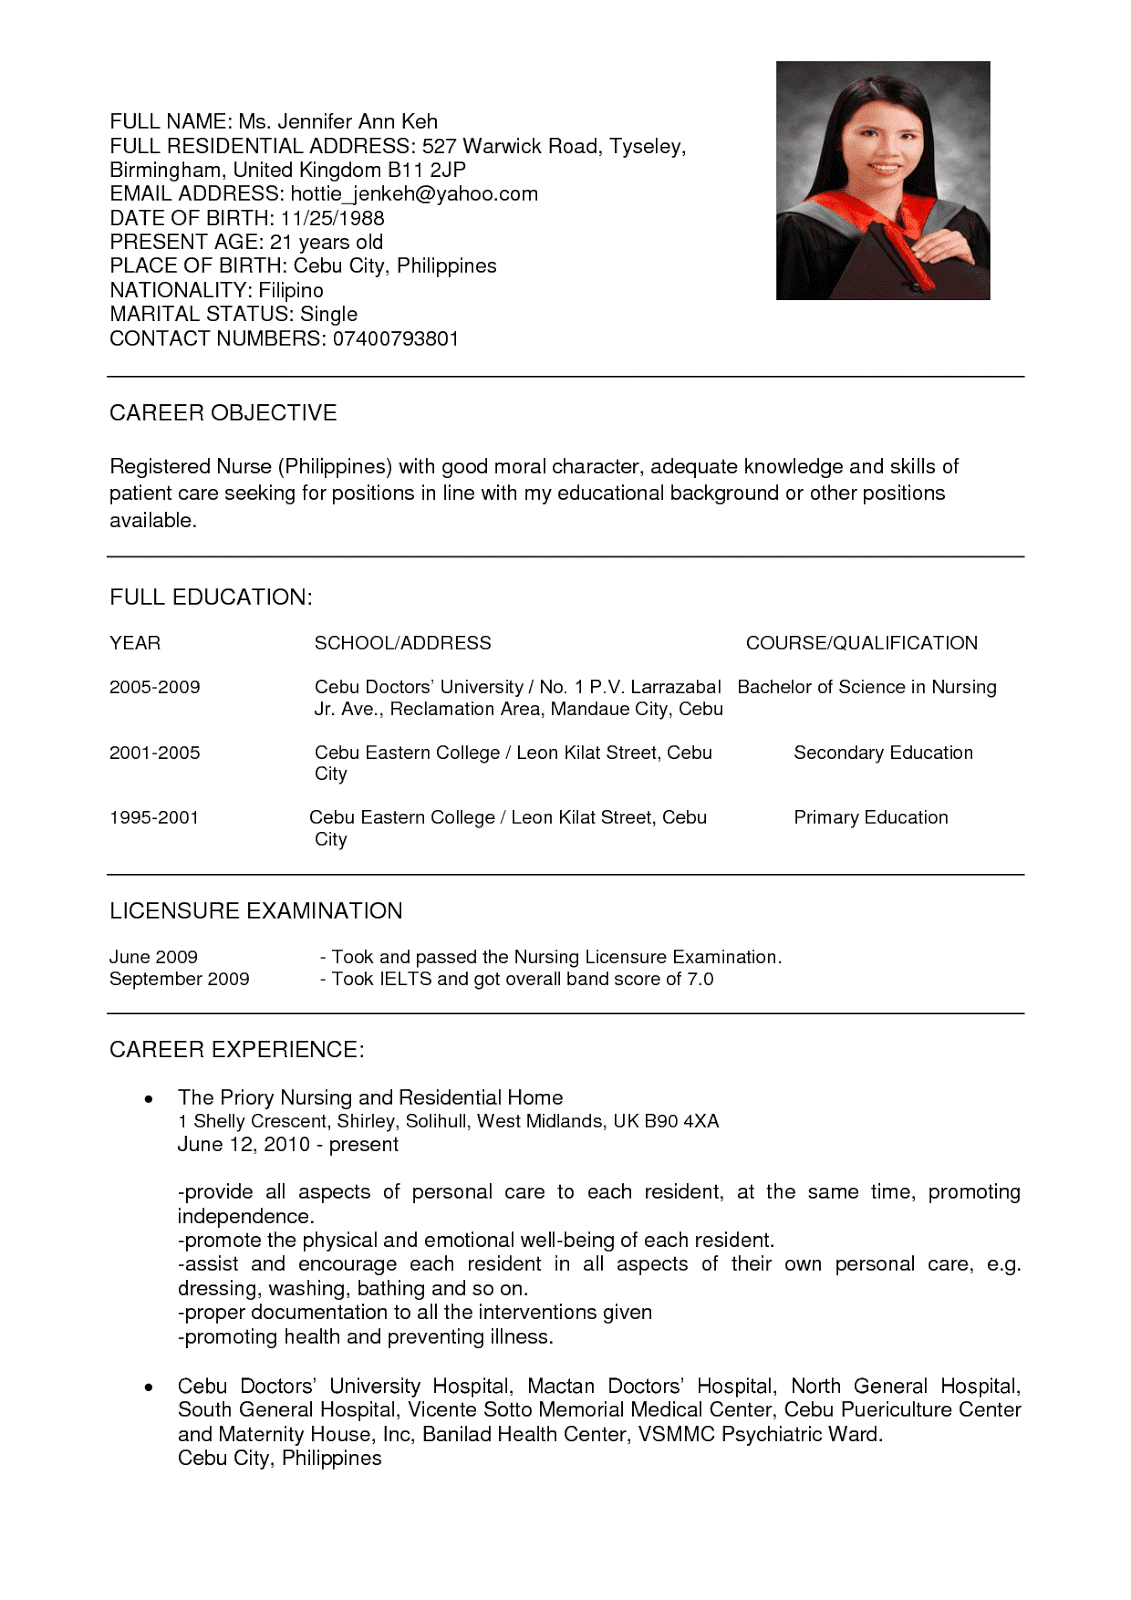 Nursing resume example